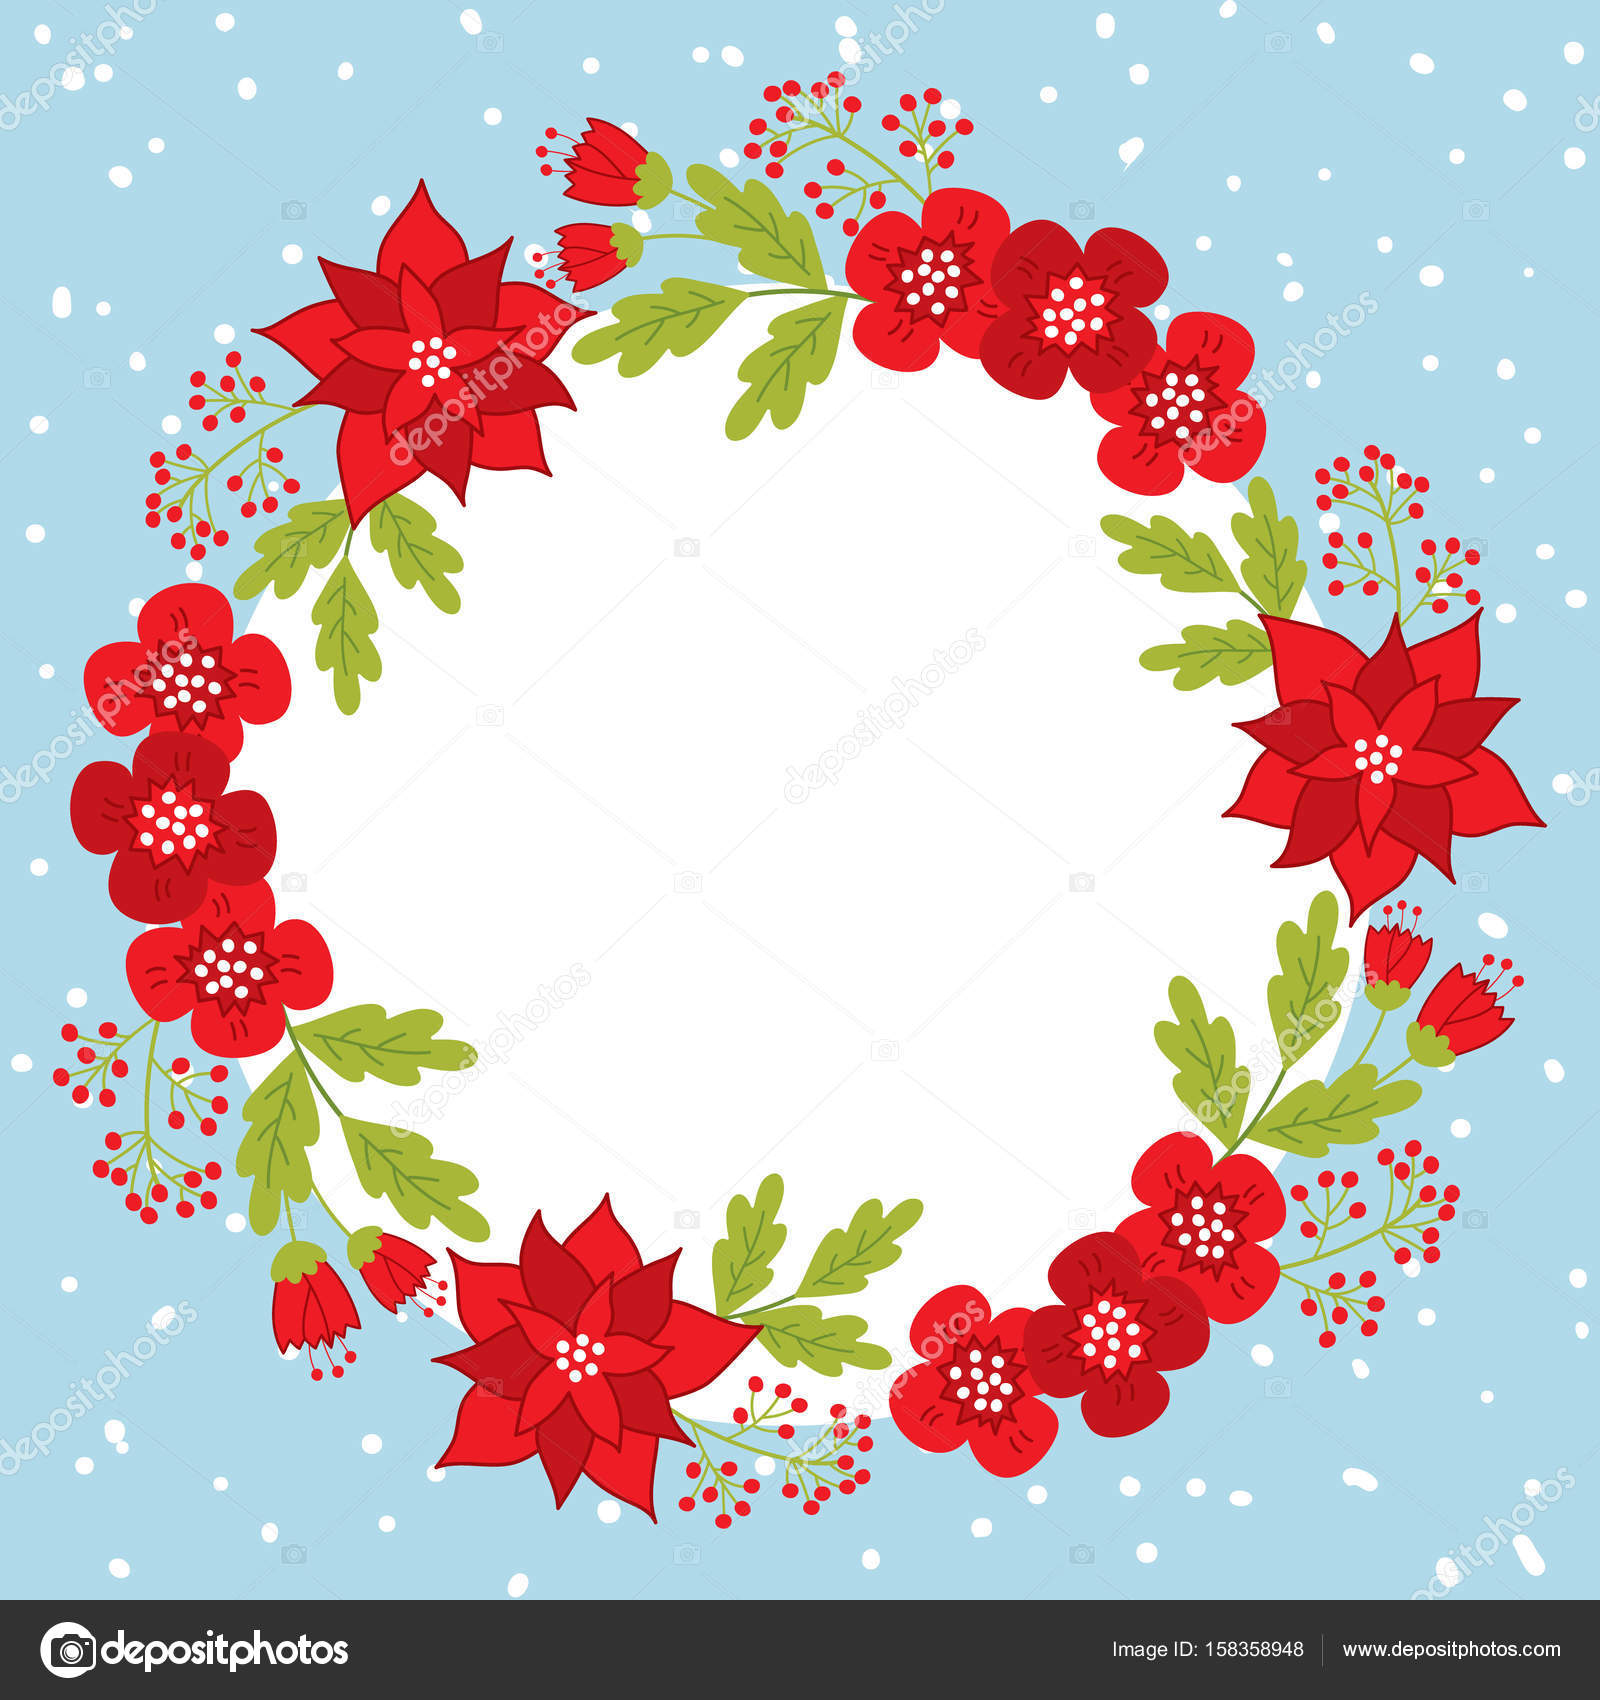 vector christmas and new year card template with wreath and poinsettia on snow background card